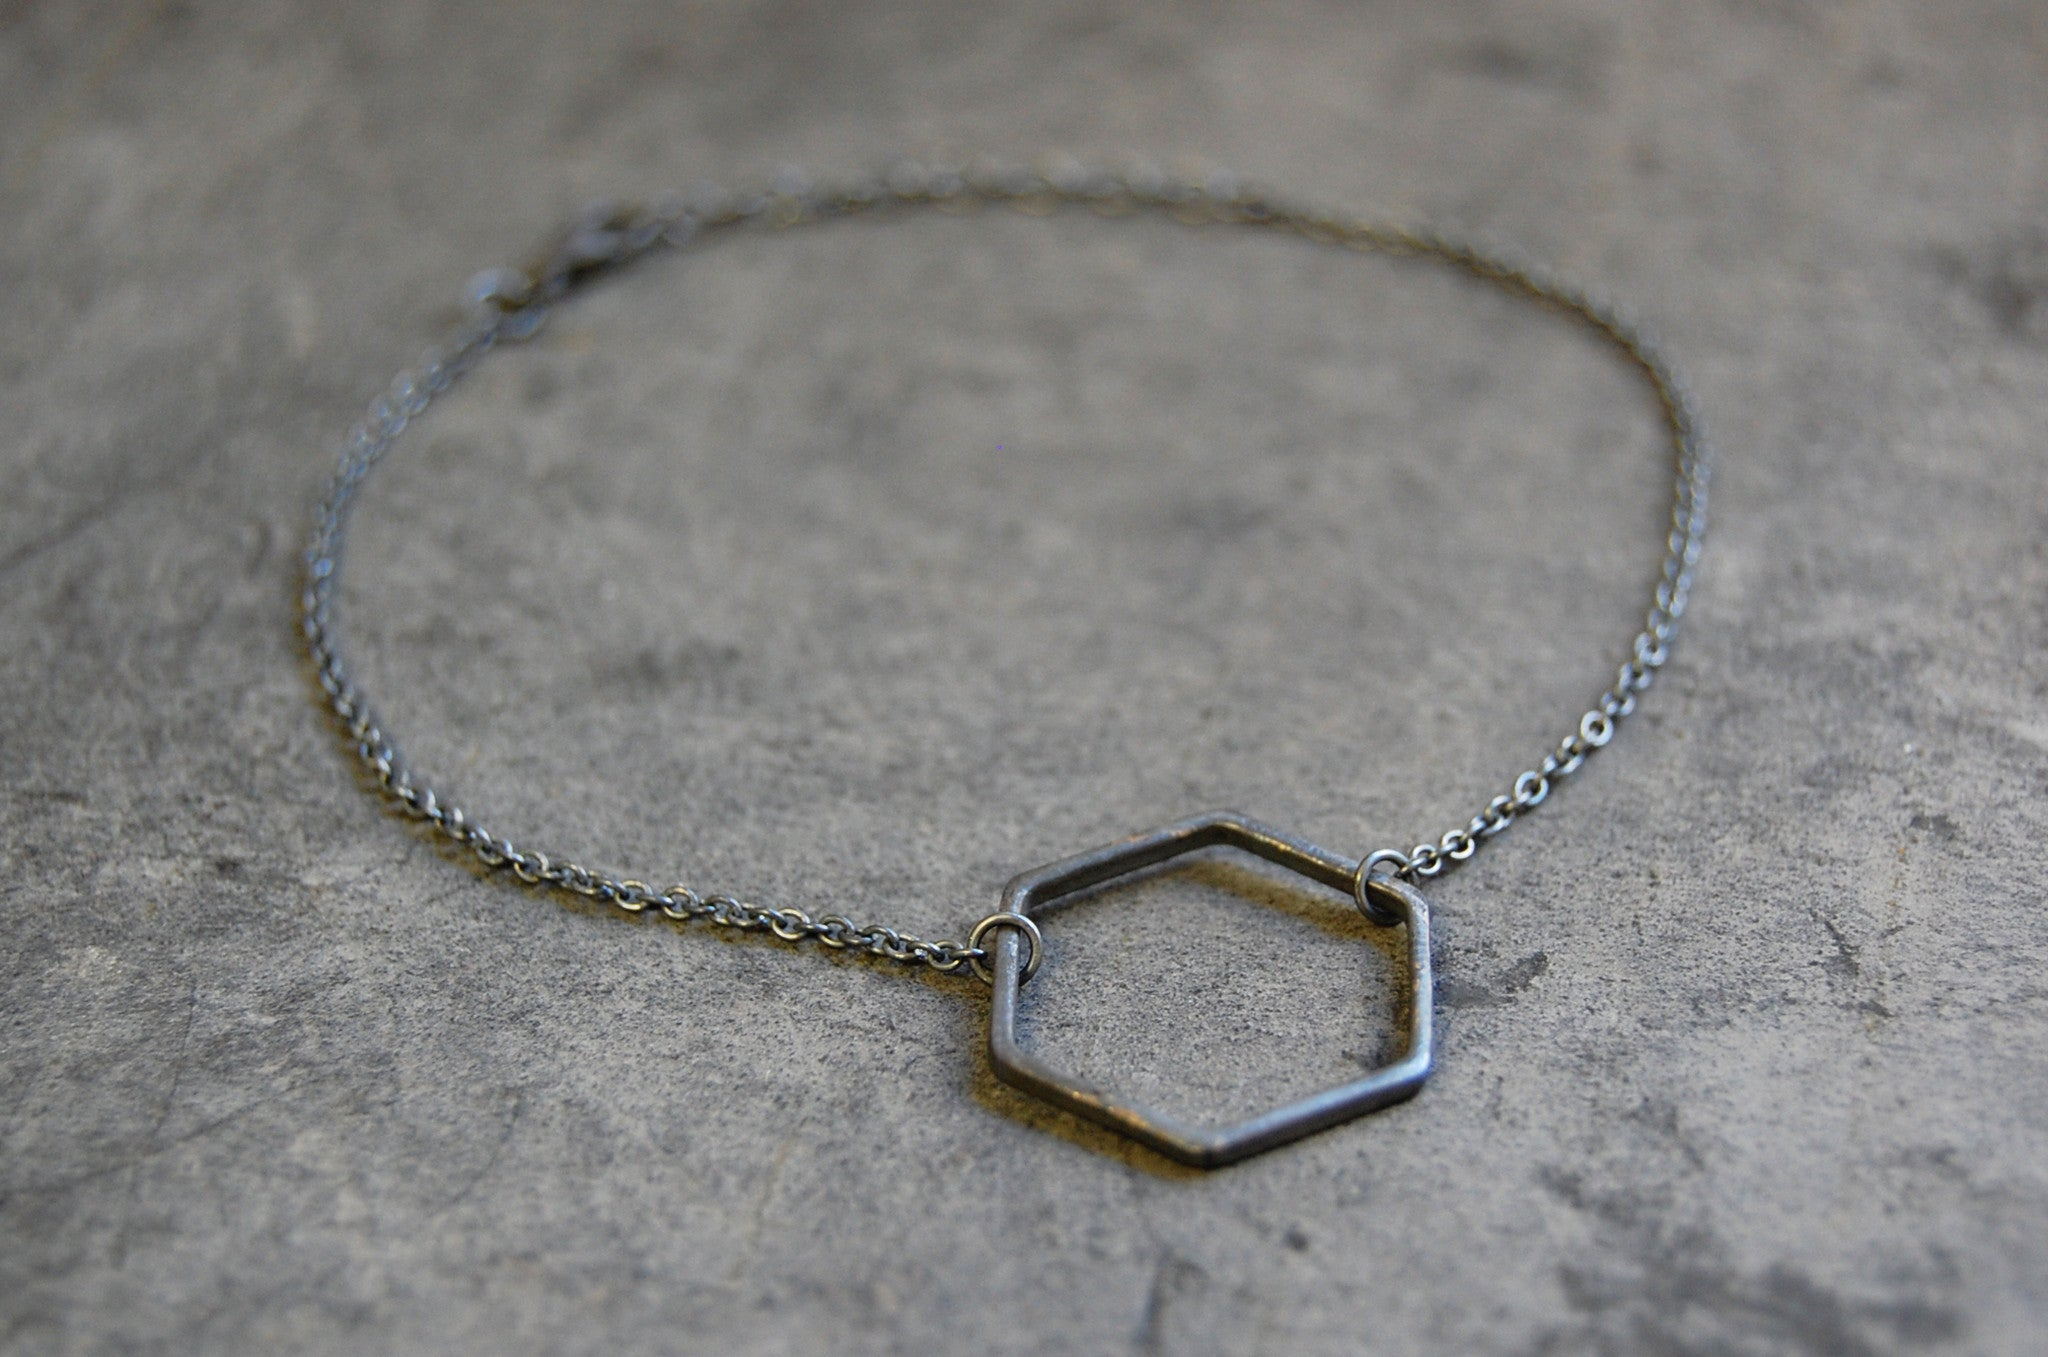 hexagonal ring bracelet oxidised 925 silver